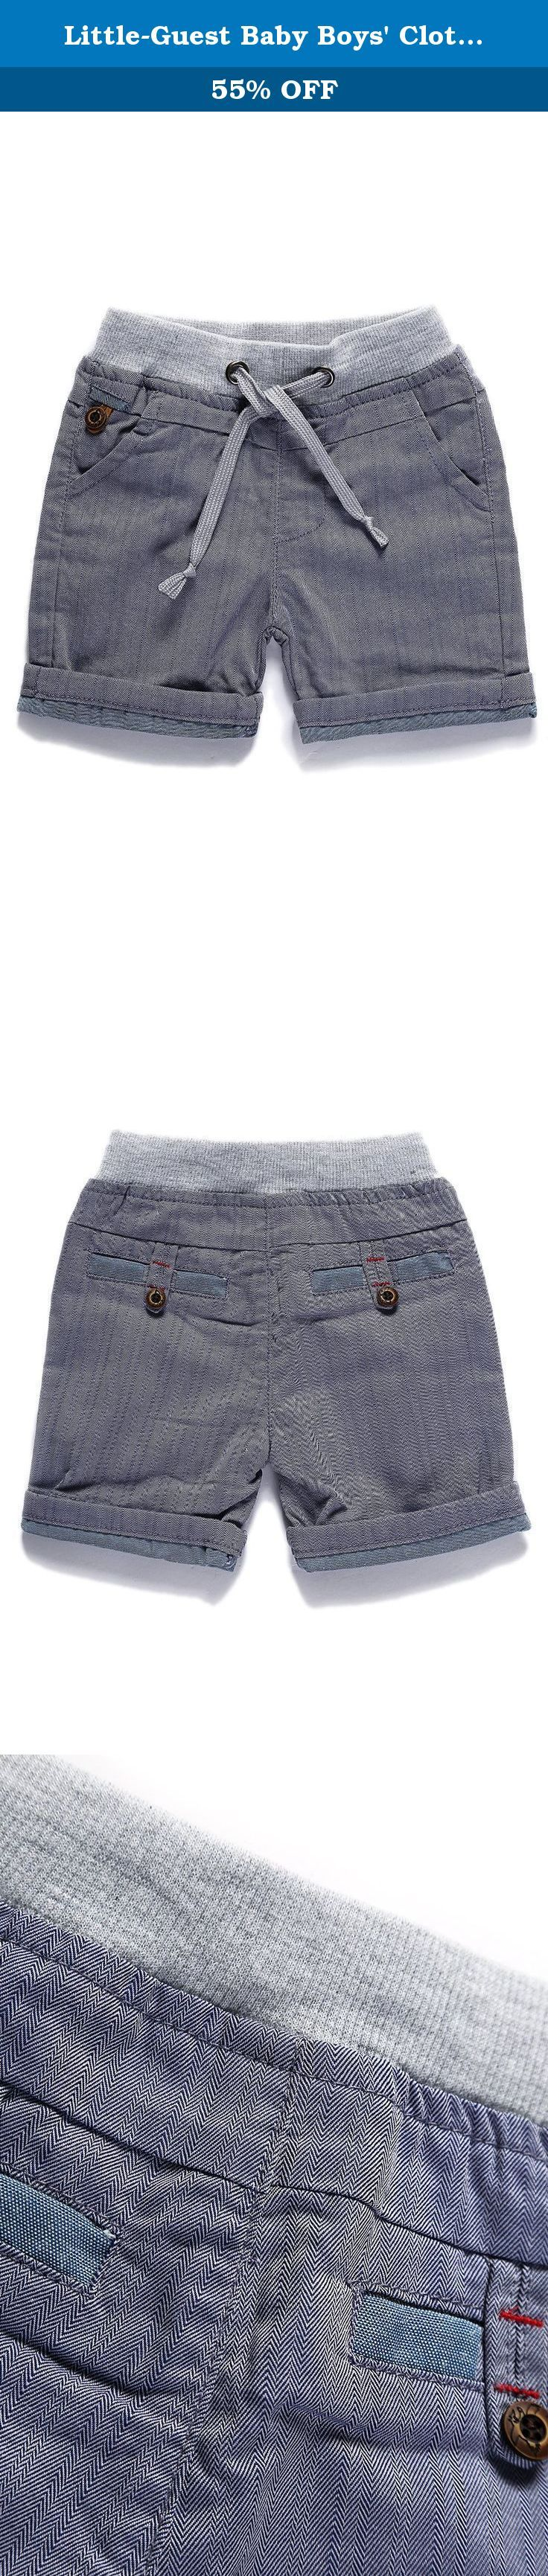 """Little-Guest Baby Boys' Clothes Casual Knee-Length Shorts B218 (24-30 Months, Dark Grey). Pay attention to our Size Chart: 6-9 Months WAIST:45cm/17.7"""" HIP:54cm/21.1"""" BOTTOM:24cm/9.4"""" BODY LENGTH:28cm/11.0"""" 9-12 Months WAIST:47cm/18.5"""" HIP:56cm/21.8"""" BOTTOM:25cm/9.8"""" BODY LENGTH:29.5cm/11.6"""" 12-18 Months WAIST:49cm/19.3"""" HIP:58cm/22.8"""" BOTTOM:26cm/10.2"""" BODY LENGTH:31cm/12.2"""" 18-24 Months WAIST:51cm/20.1"""" HIP:60cm/23.4"""" BOTTOM:27cm/10.5"""" BODY LENGTH:32.5cm/12.8"""" 24-30 Months…"""